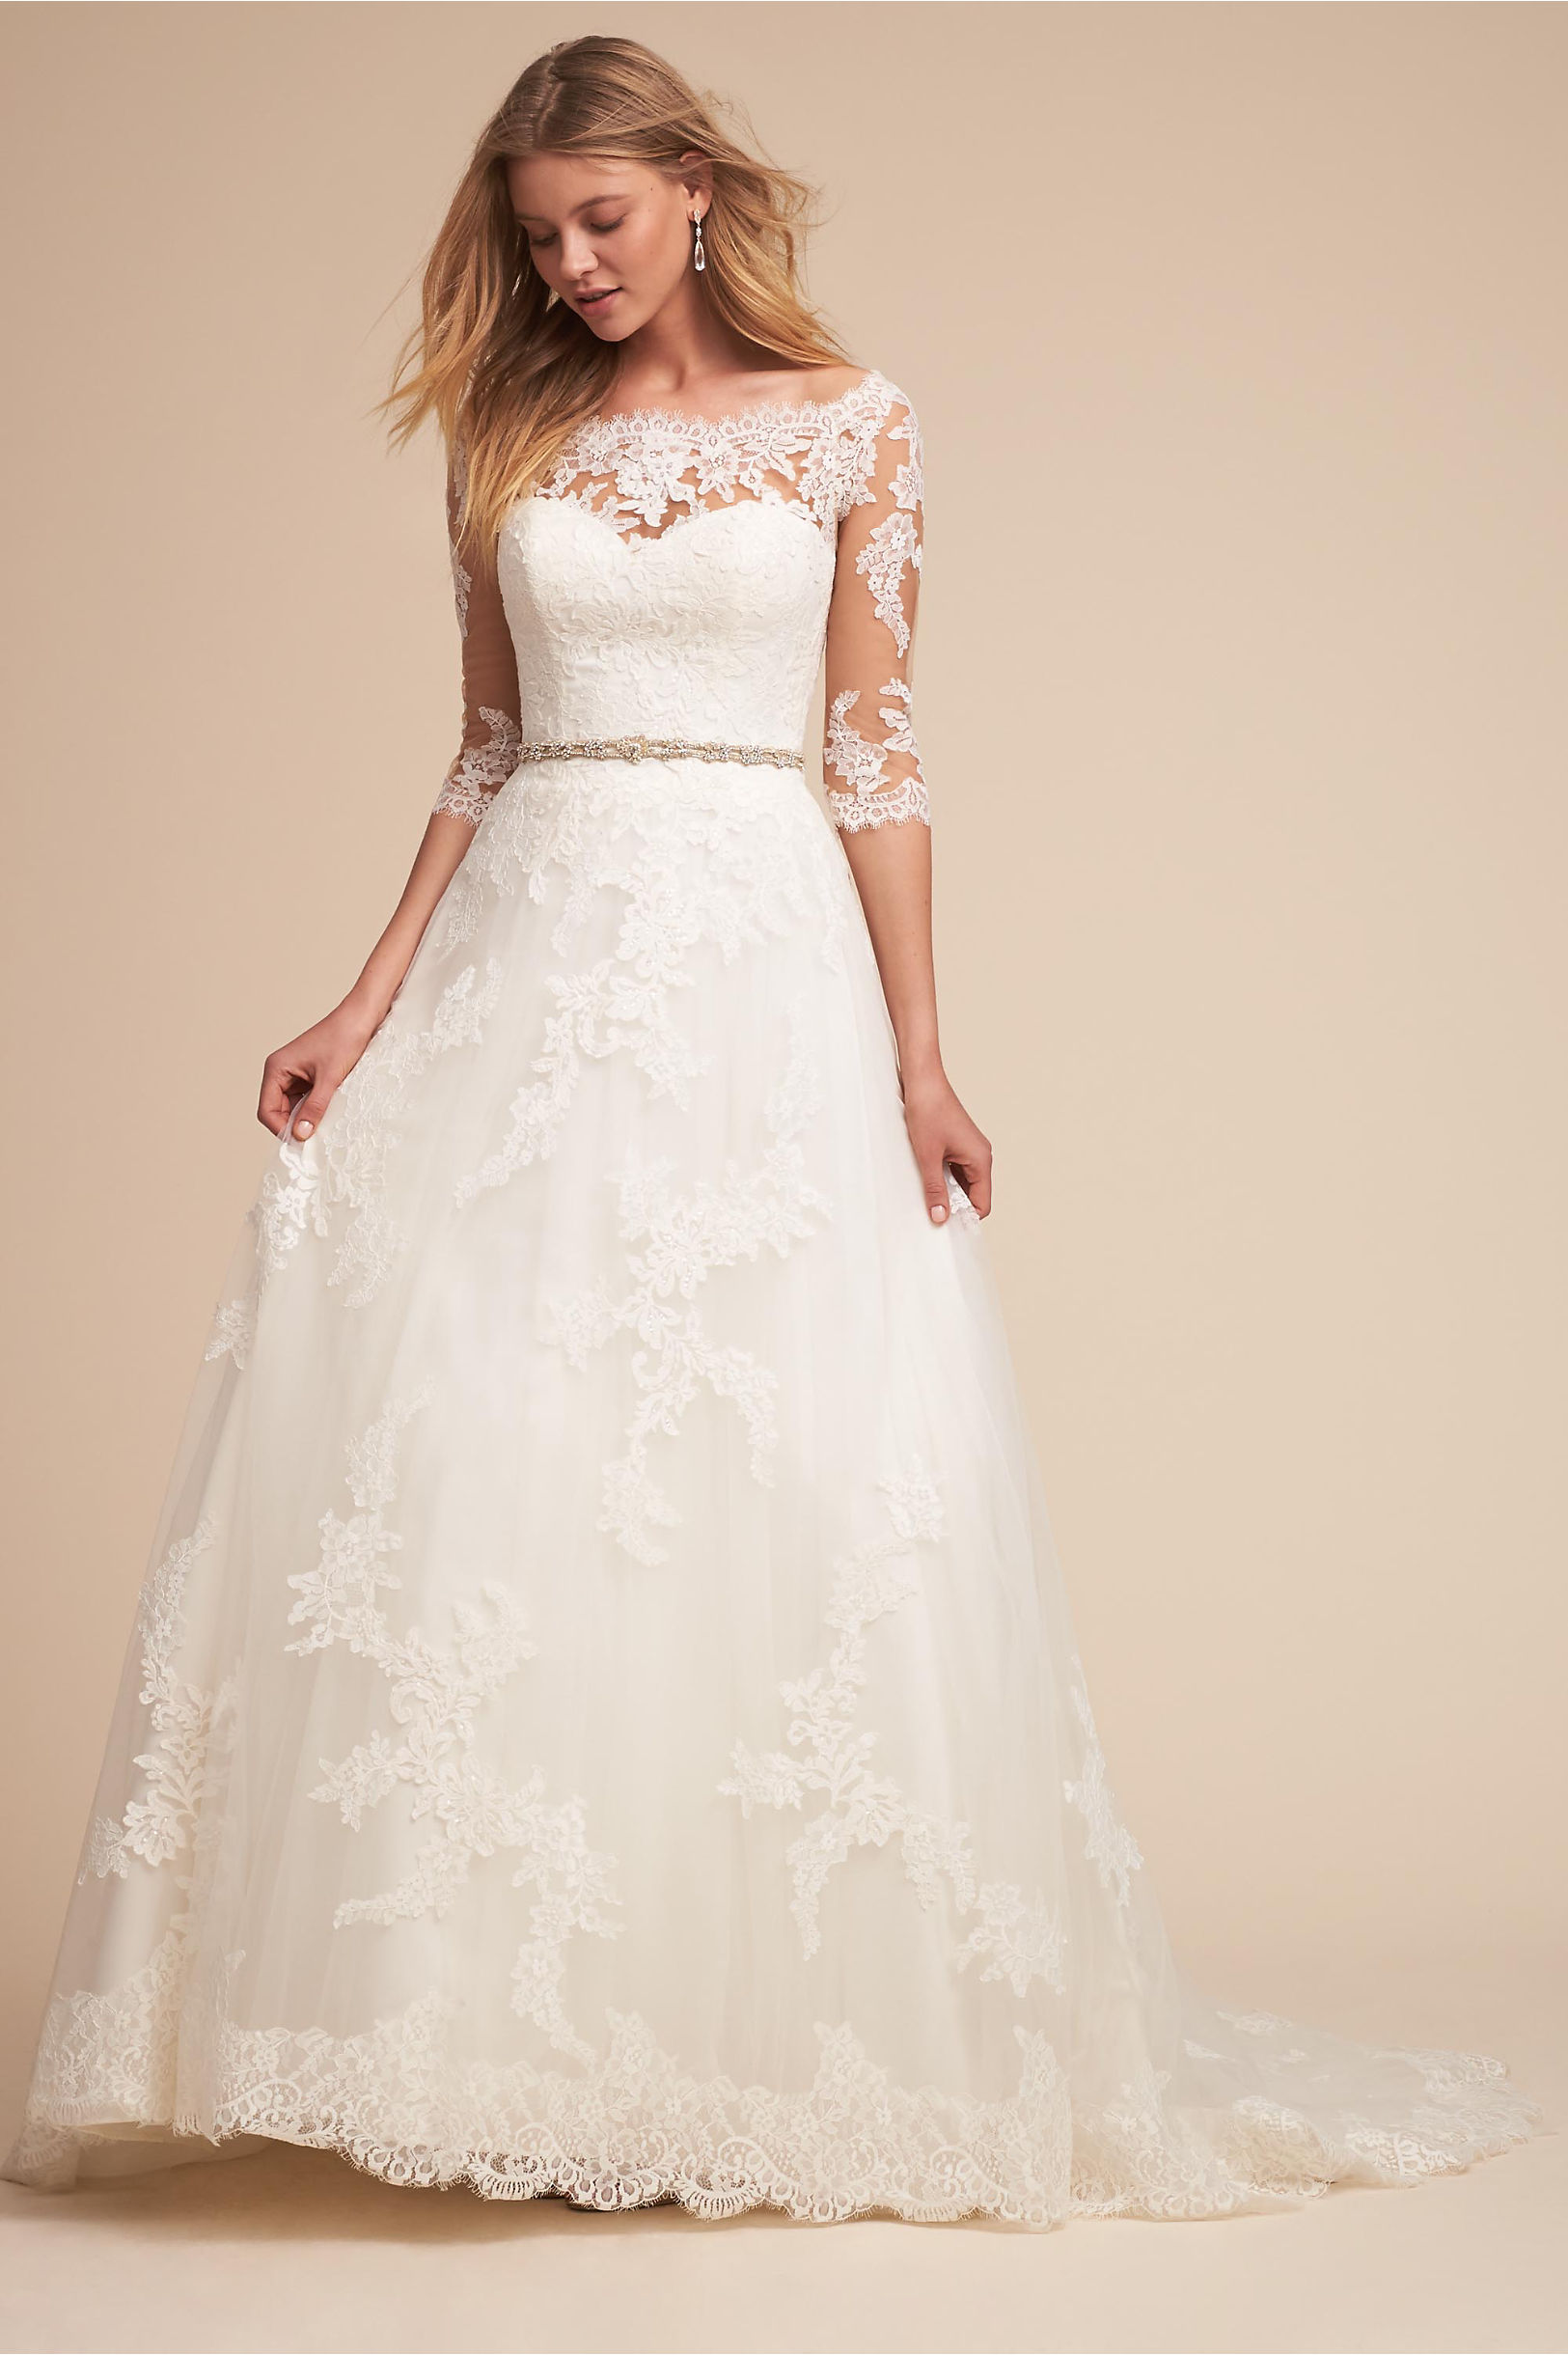 Modern Bhldn Rococo Gown Picture Collection - Ball Gown Wedding ...